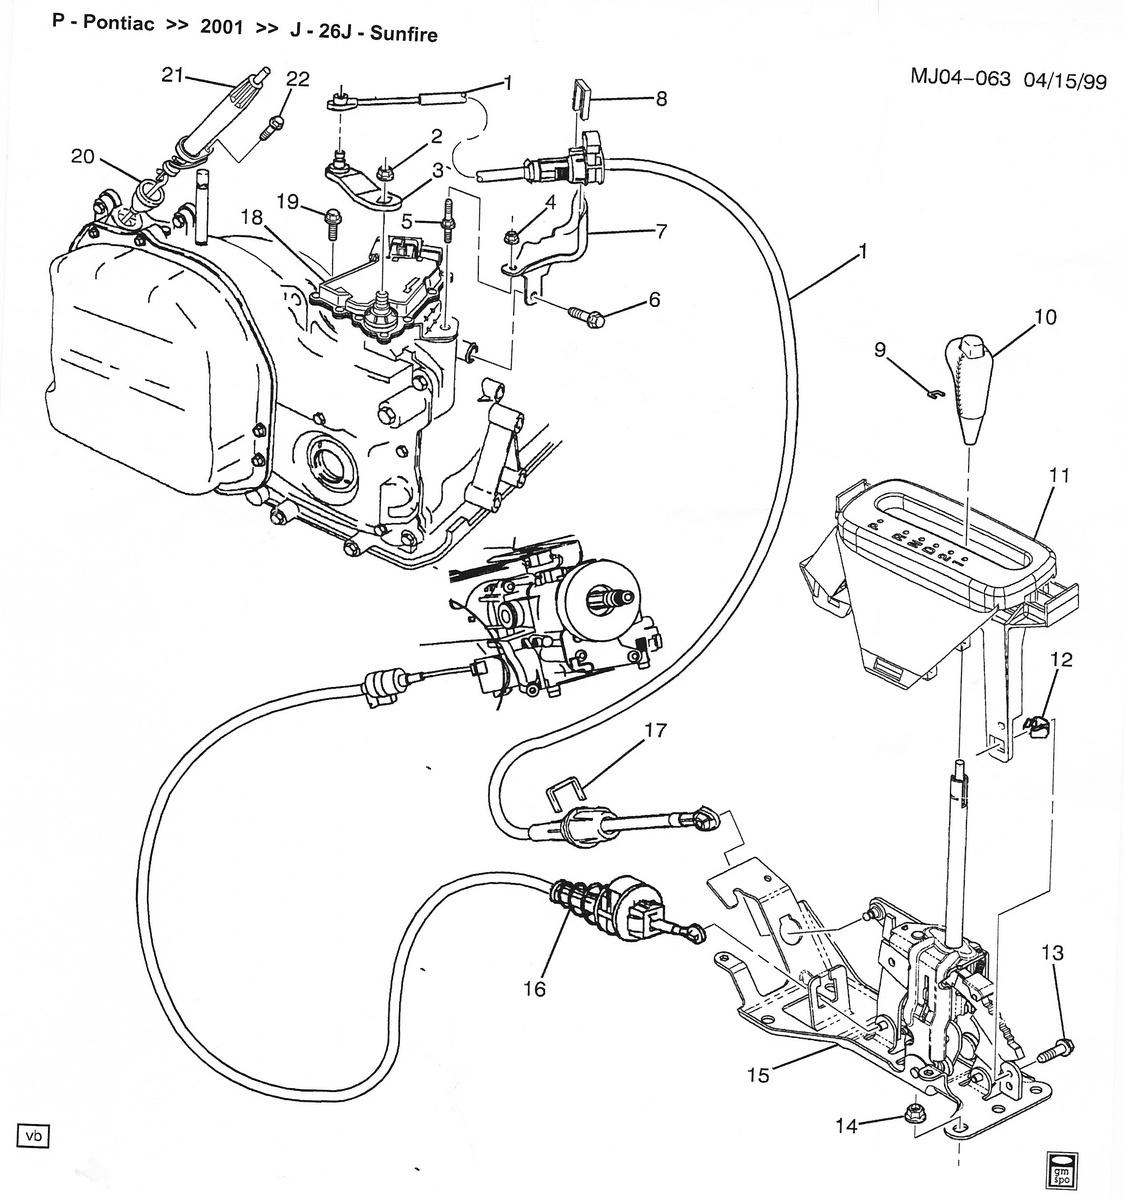 1979 Ford F150 Fuse Box together with 2001 Bmw 325i Expansion Tank Diagram further 2003 Pontiac Sunfire Serpentine Belt Diagram Html further 2003 Pontiac Montana Map Sensor as well 2003 Oldsmobile Alero Fuse Diagram Wiring Diagrams. on 2003 pontiac montana parts diagrams